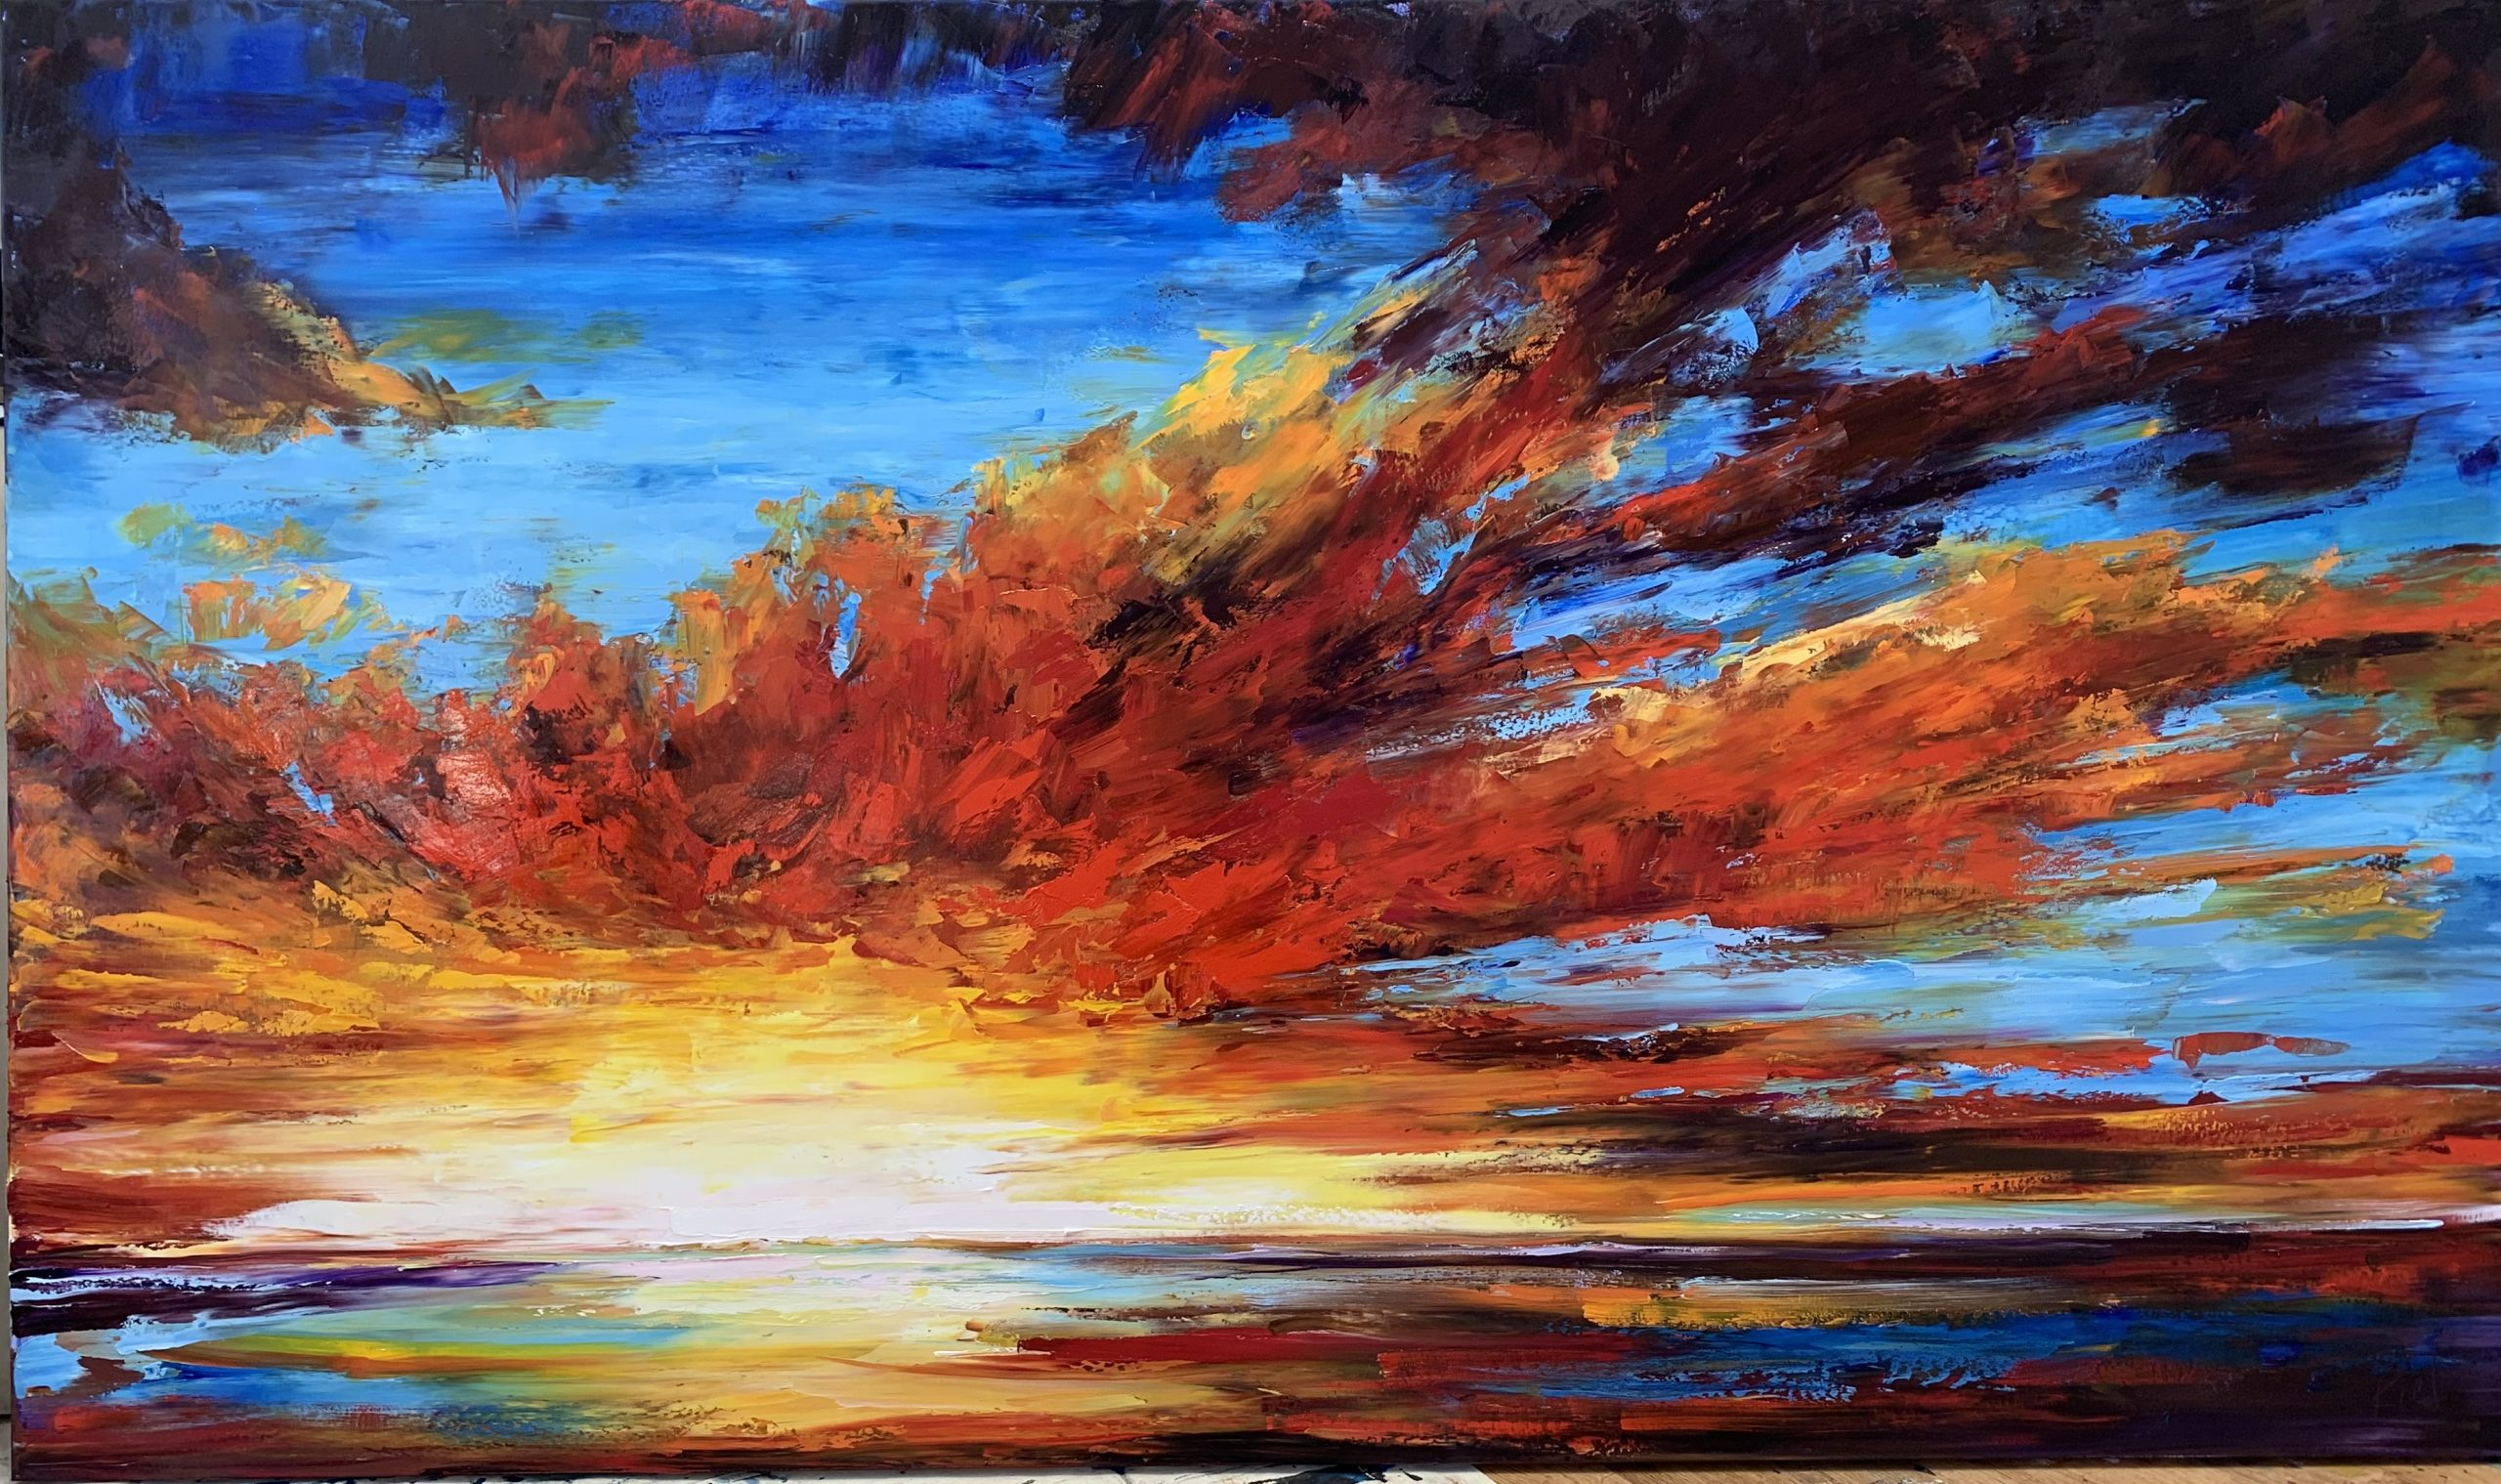 Nothing is Still, sunset painting by Kimberly Kiel | Effusion Art Gallery + Cast Glass Studio, Invermere BC